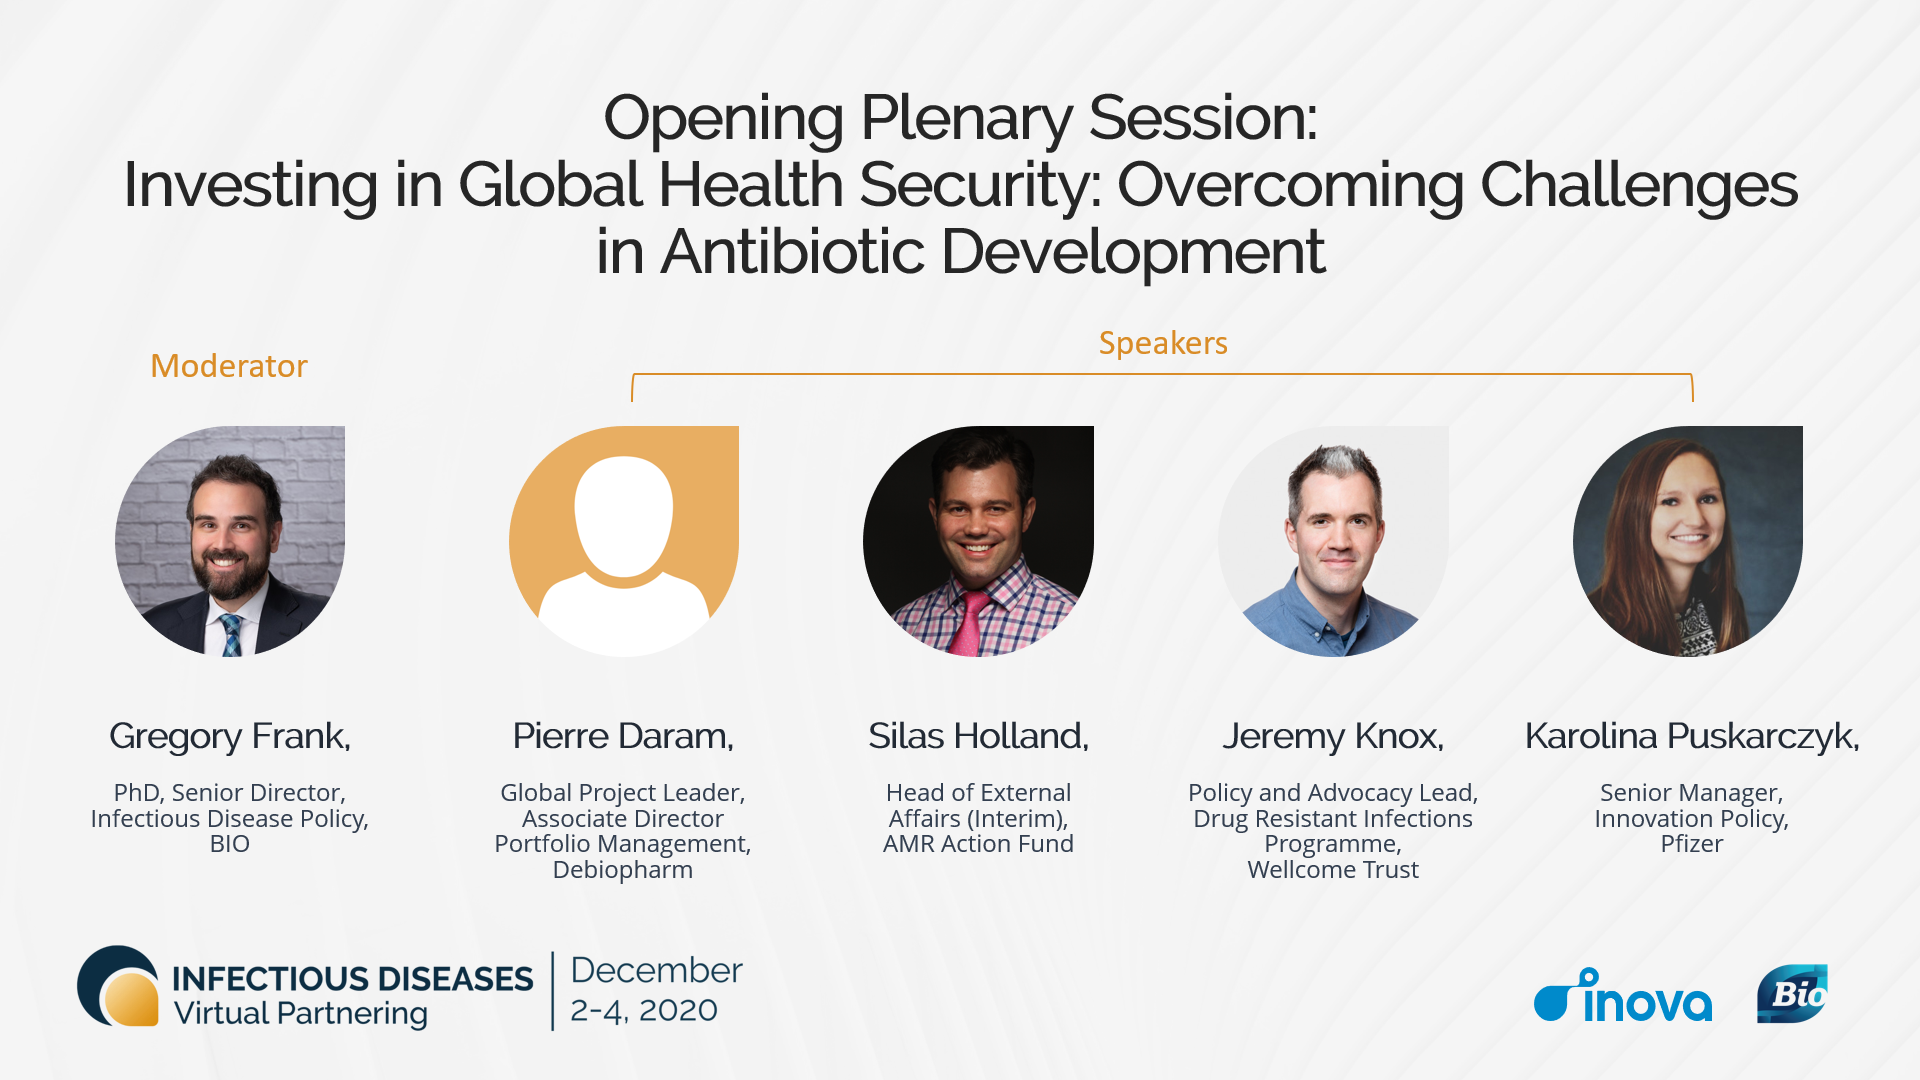 Investing in Global Health Security: Overcoming Challenges in Antibiotic Development